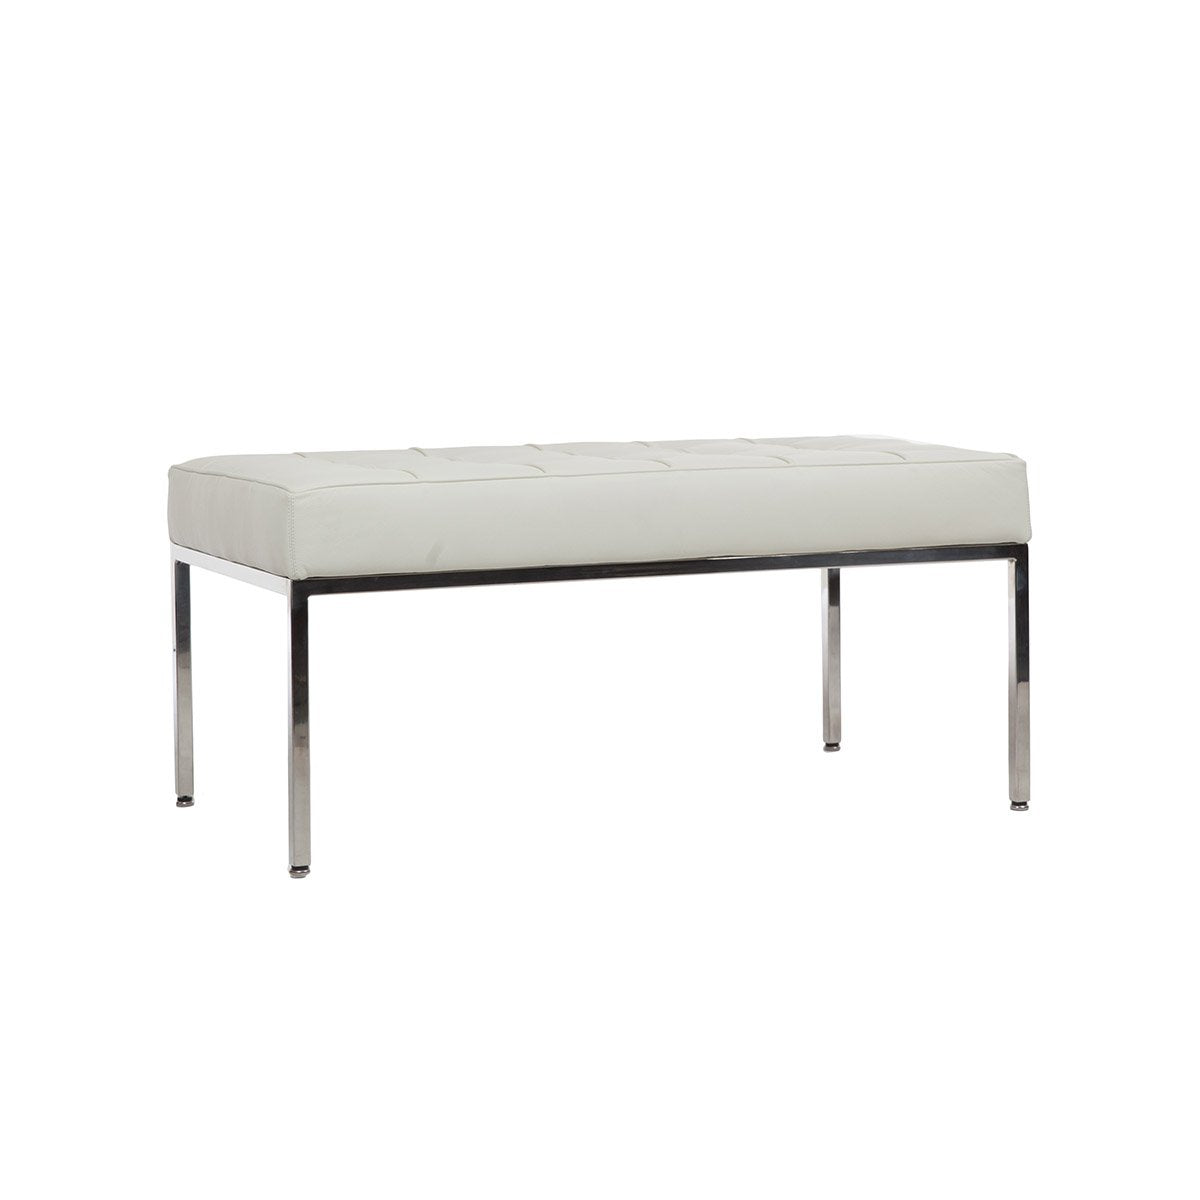 [FEC4719LWHT] The Colden White Bench sale